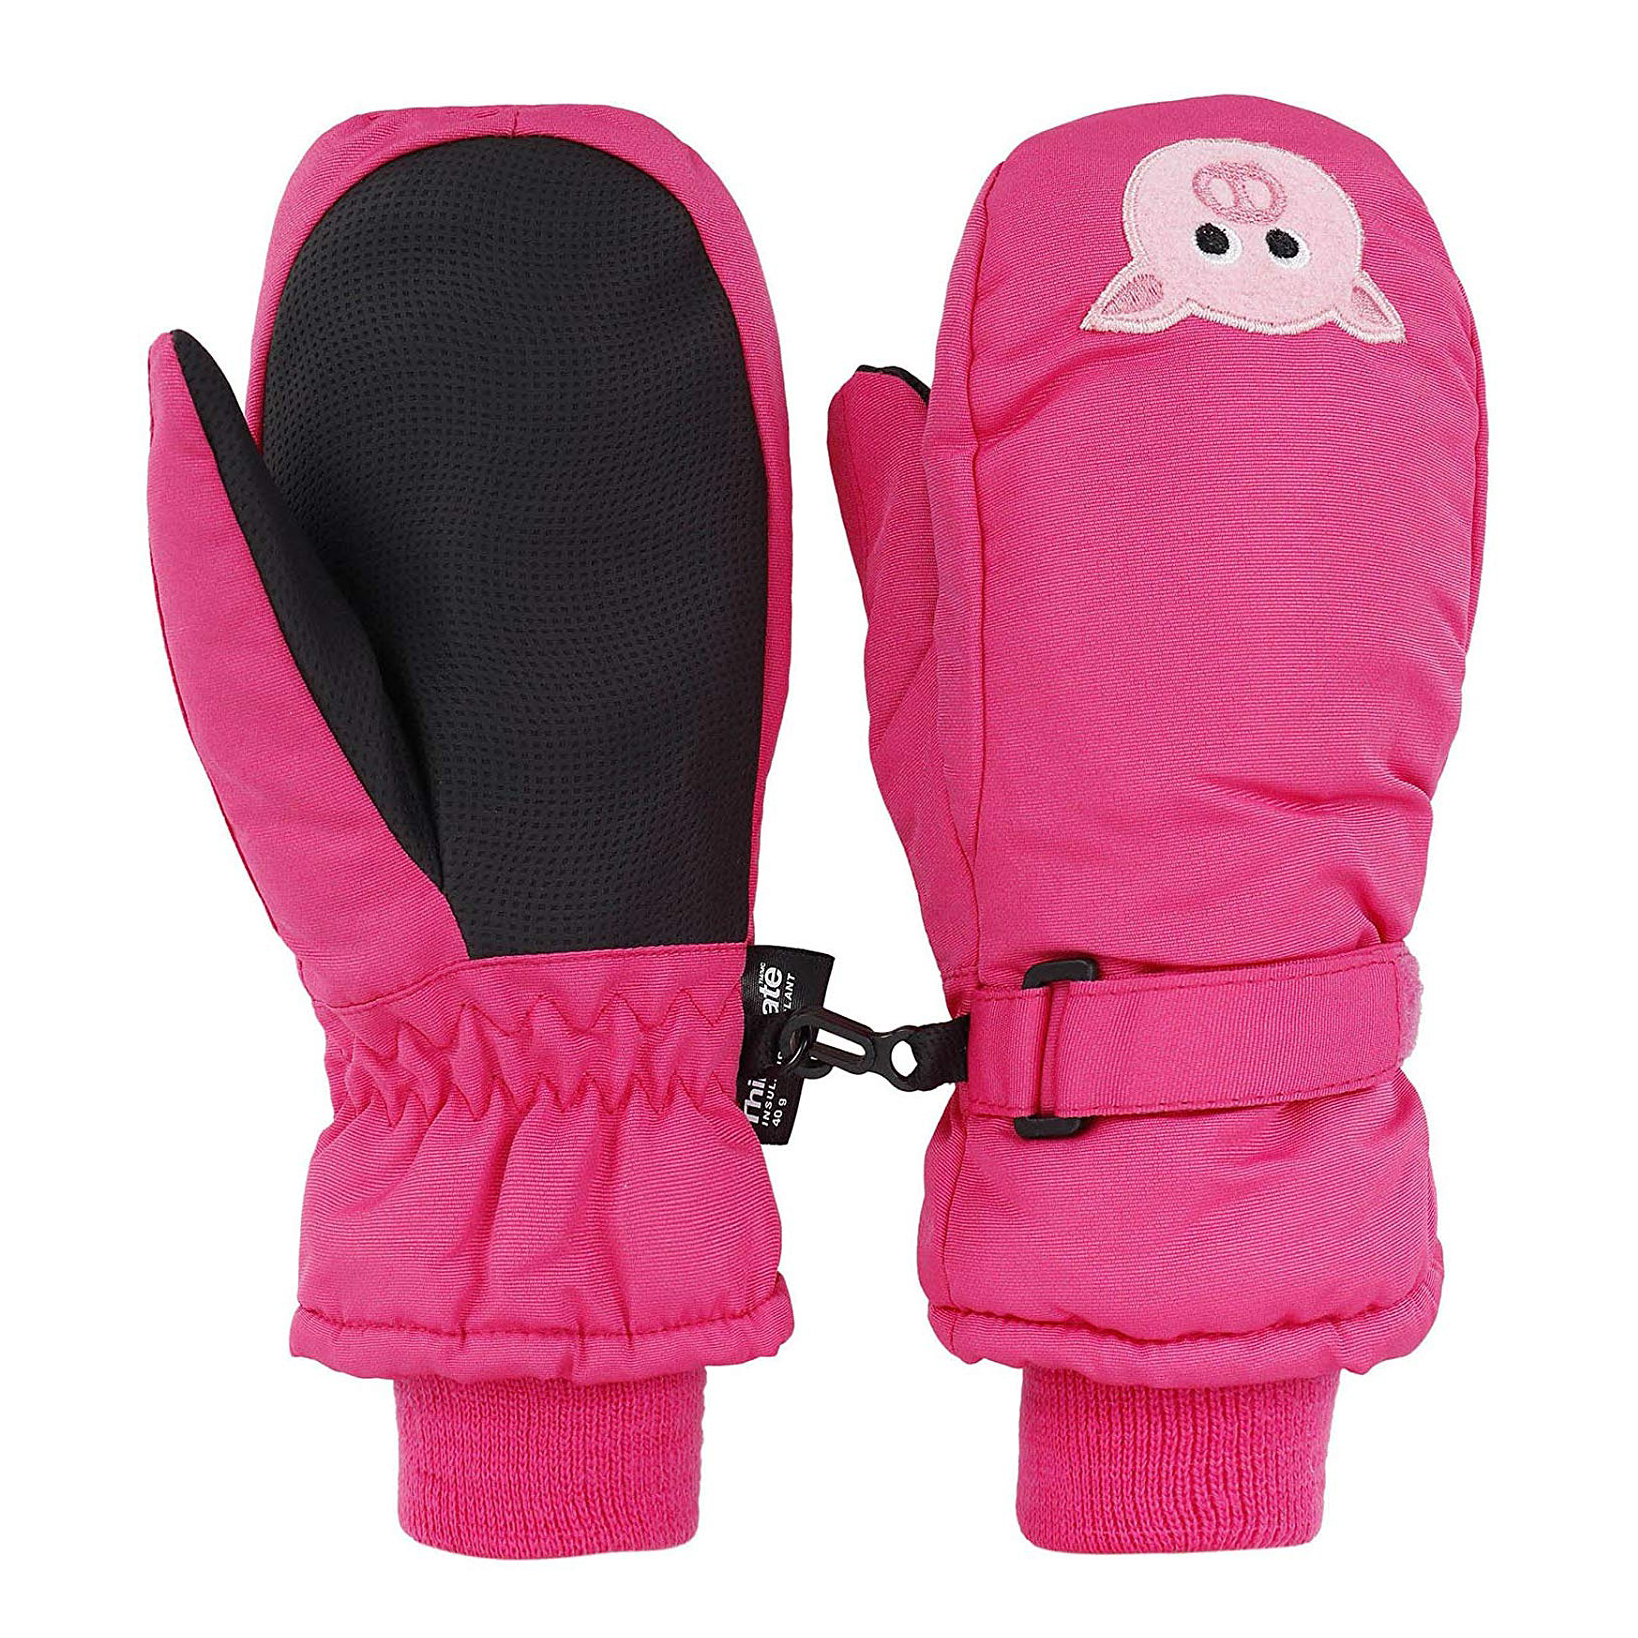 Pig-Themed Baby and Toddler Gifts Livingston Children's Thinsulate Insulated Waterproof Ski Mittens photo